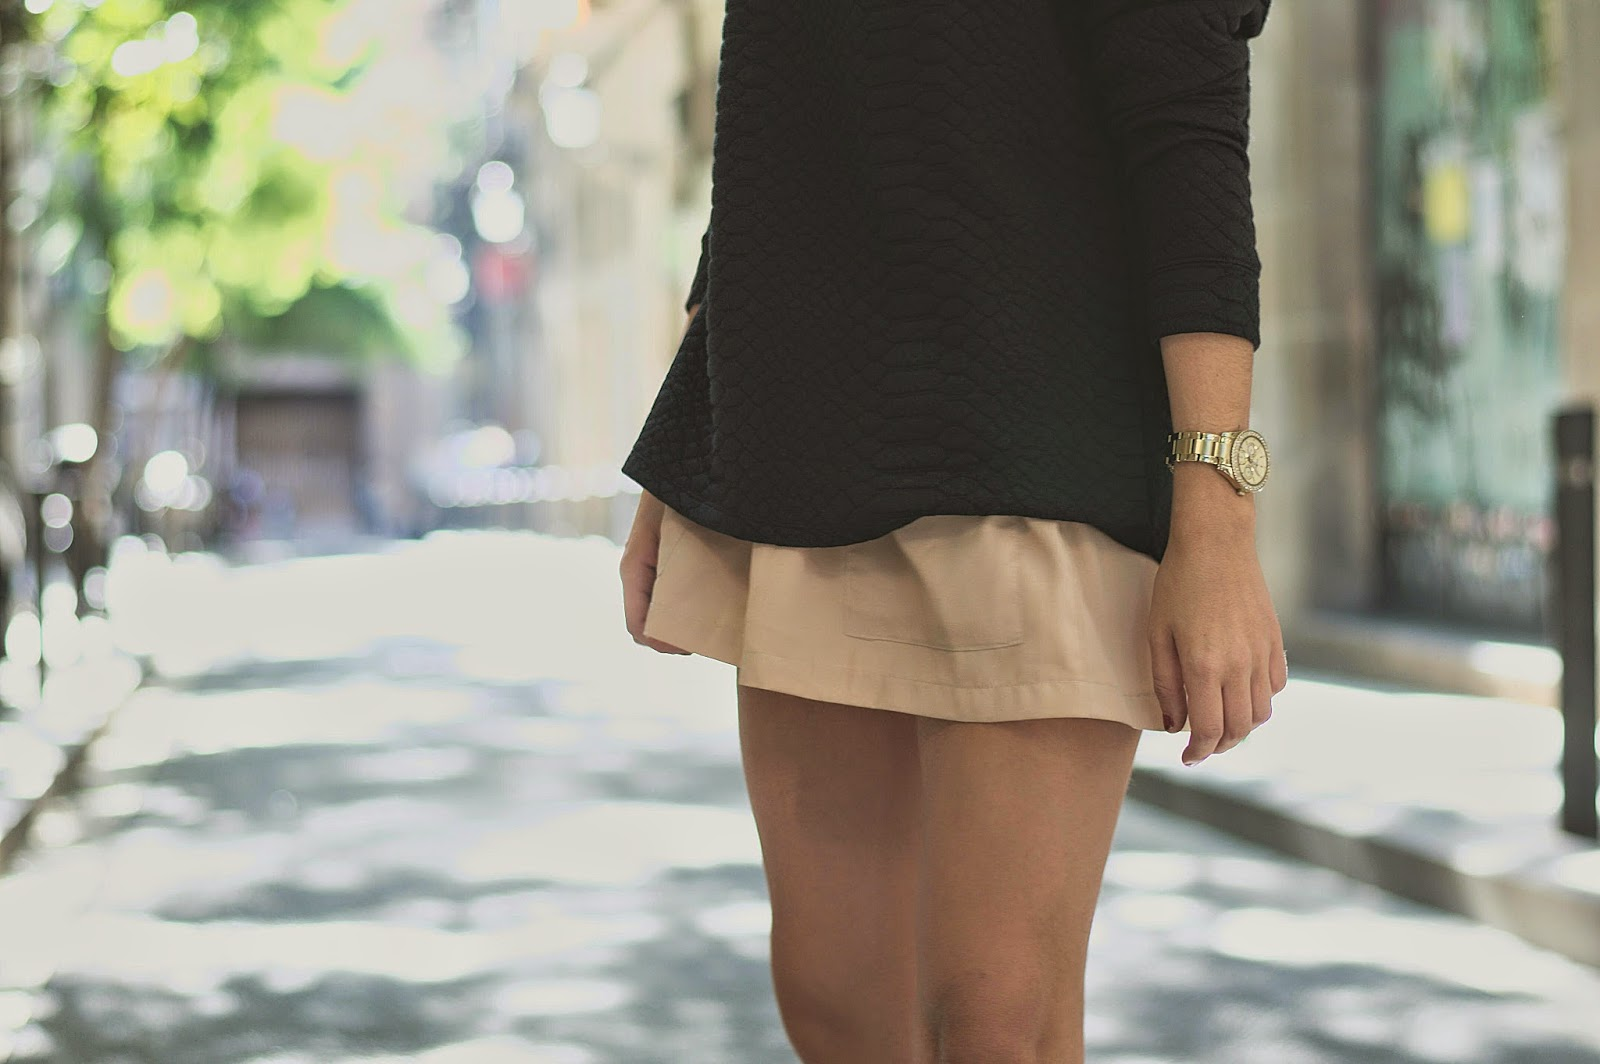 jersey H&M, Shorts Pepa Loves, bolso Zara, mocasines Geox